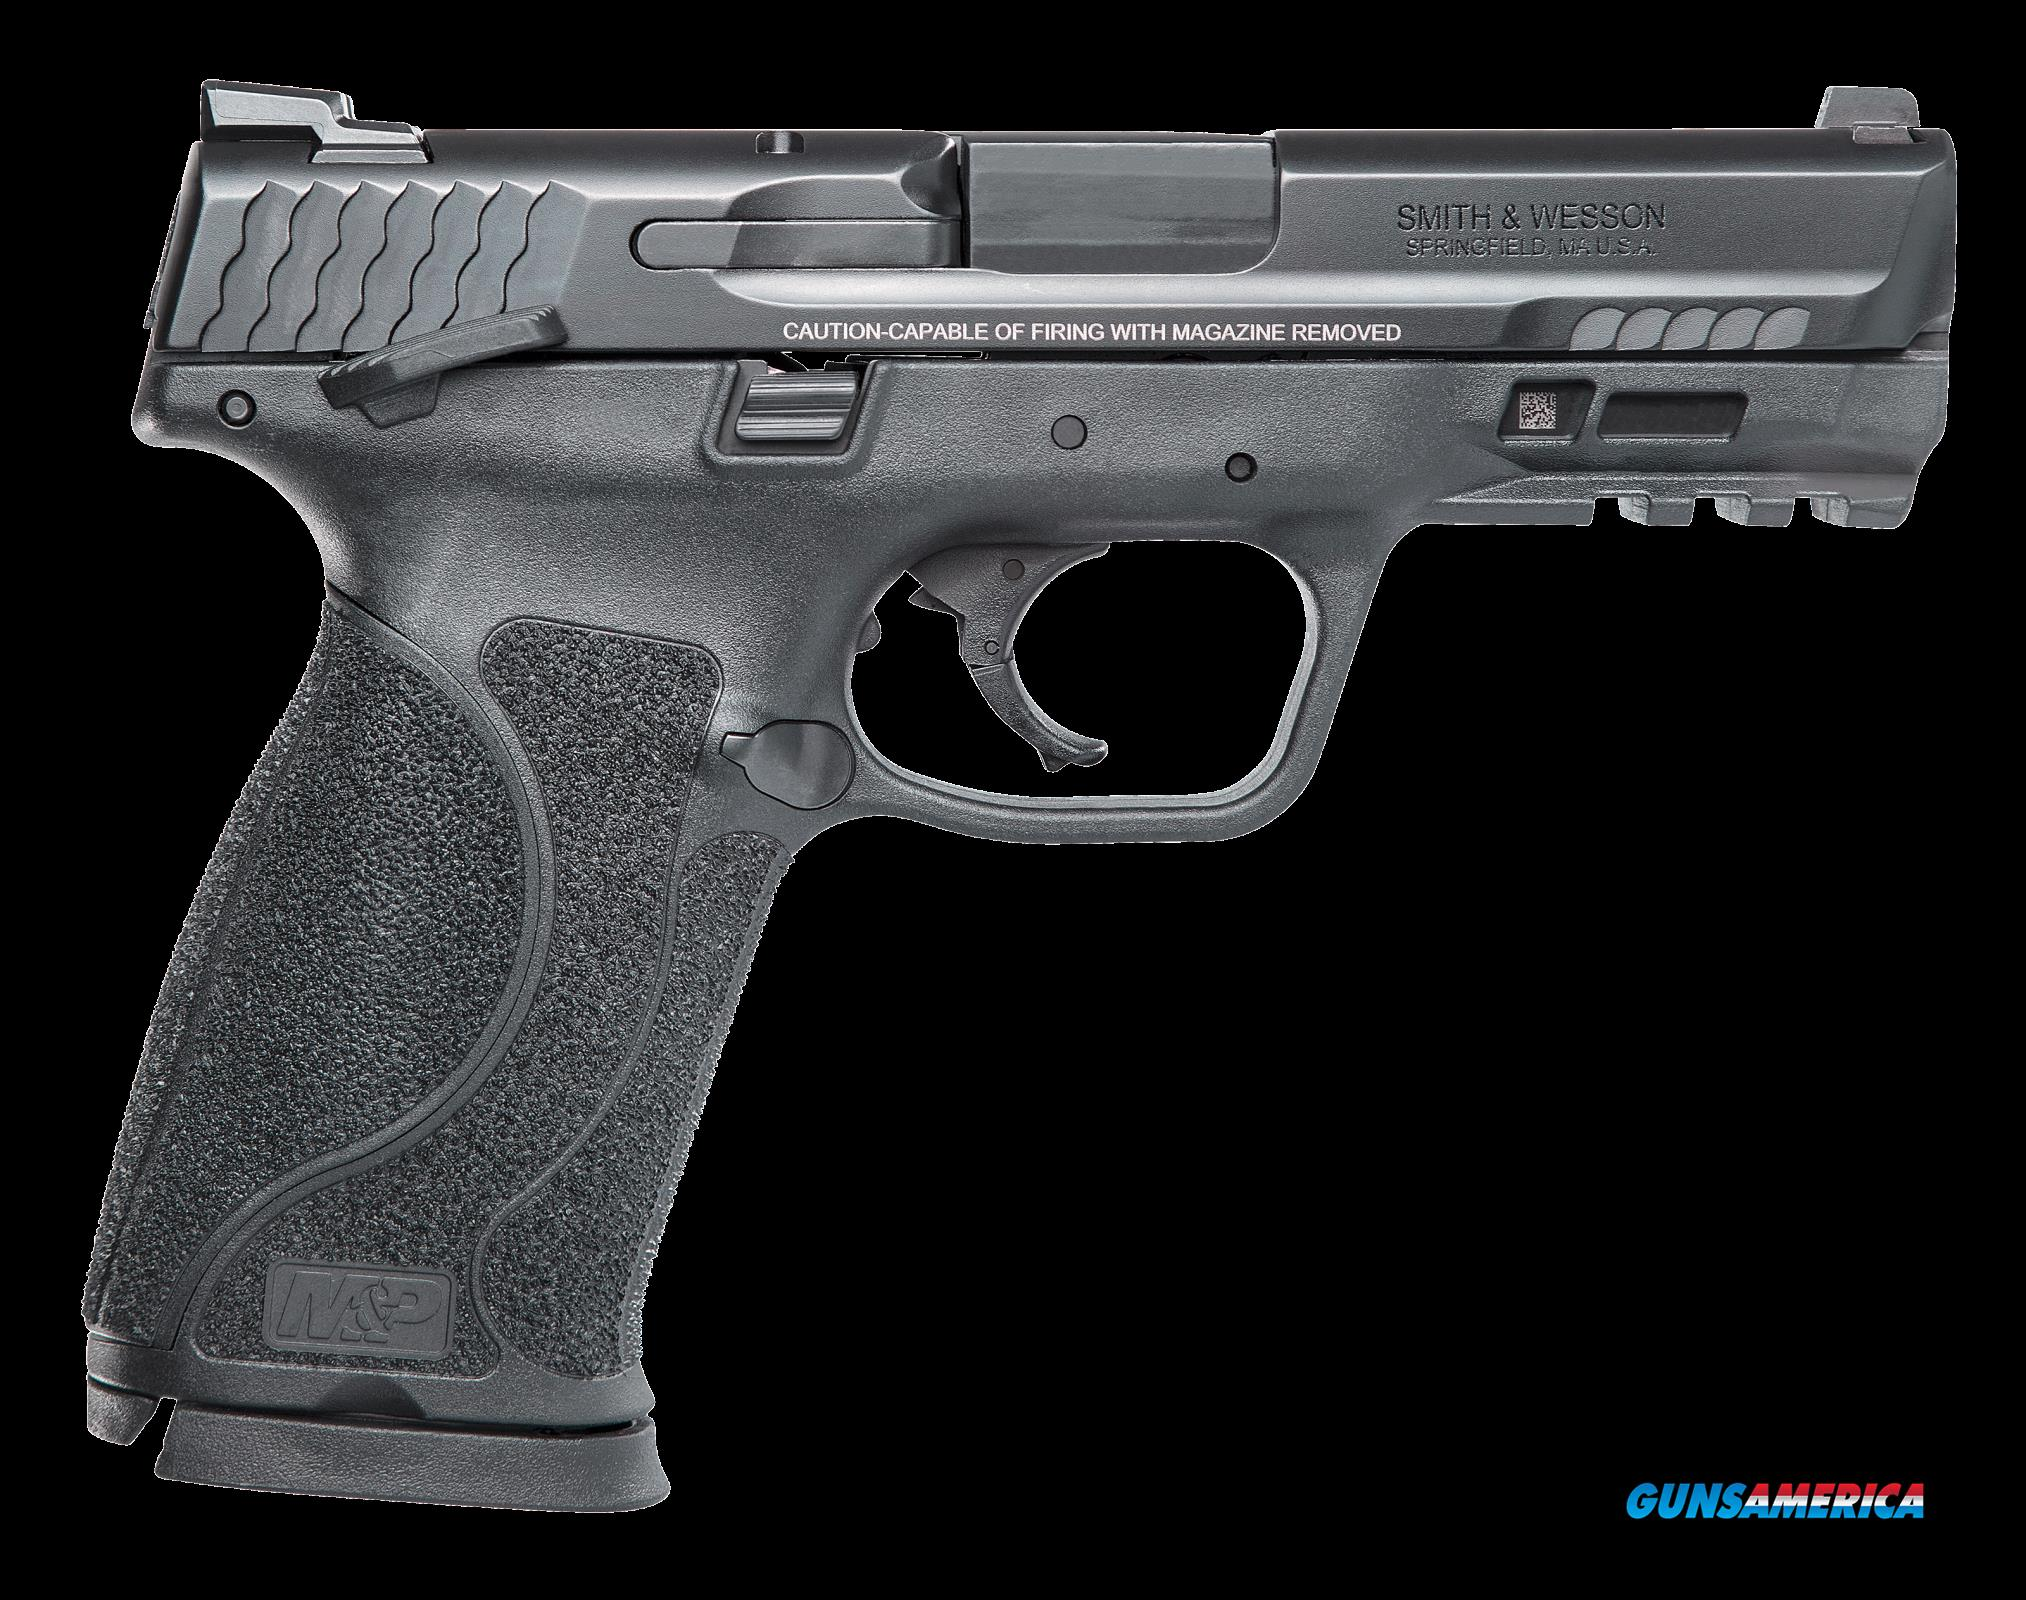 Smith & Wesson M&p 9, S&w M&p9c     12466  *ma*9m 4in  2.0 Nts      10r  Guns > Pistols > 1911 Pistol Copies (non-Colt)